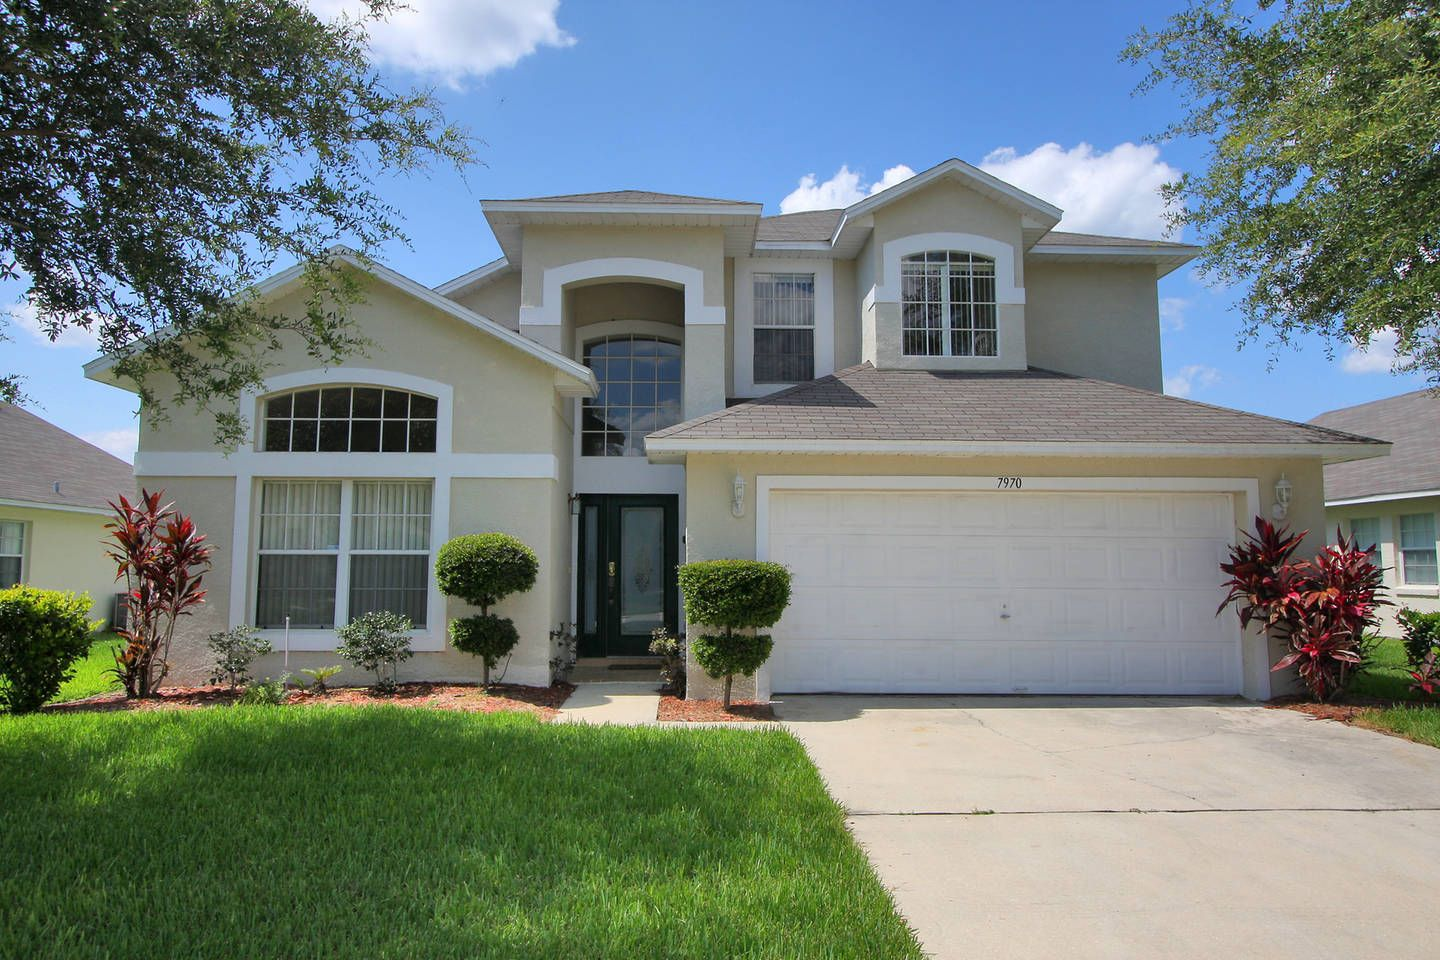 c998c7d3d2546b16bd16f26bee3fcbcc - Homes For Sale Formosa Gardens Kissimmee